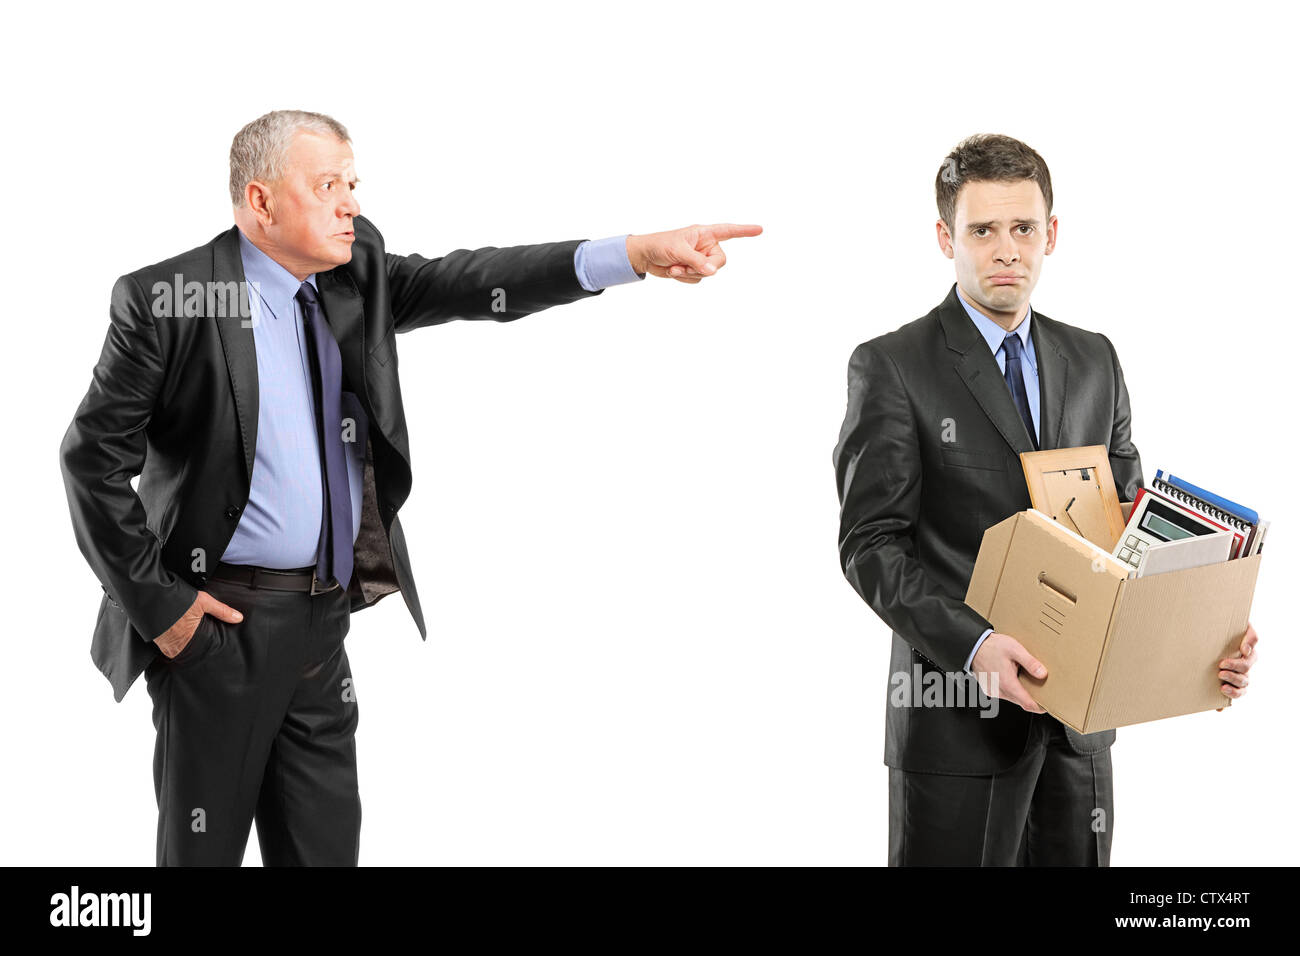 An angry boss firing a man carrying a box of personal items isolated on white background - Stock Image